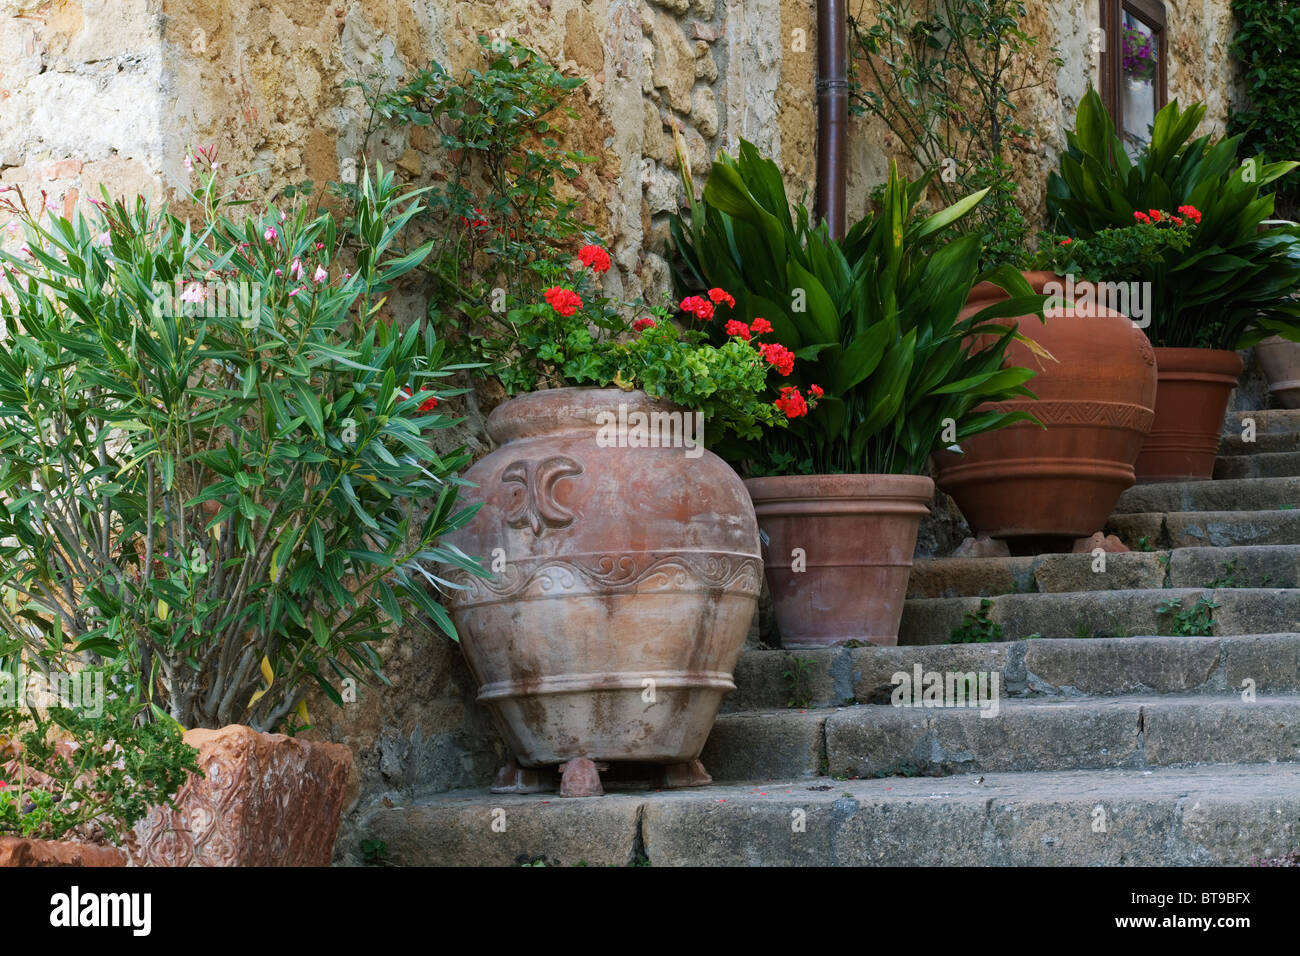 Pienza, showing decorative pots on steps with Geranium - Tuscany, Italy - Stock Image